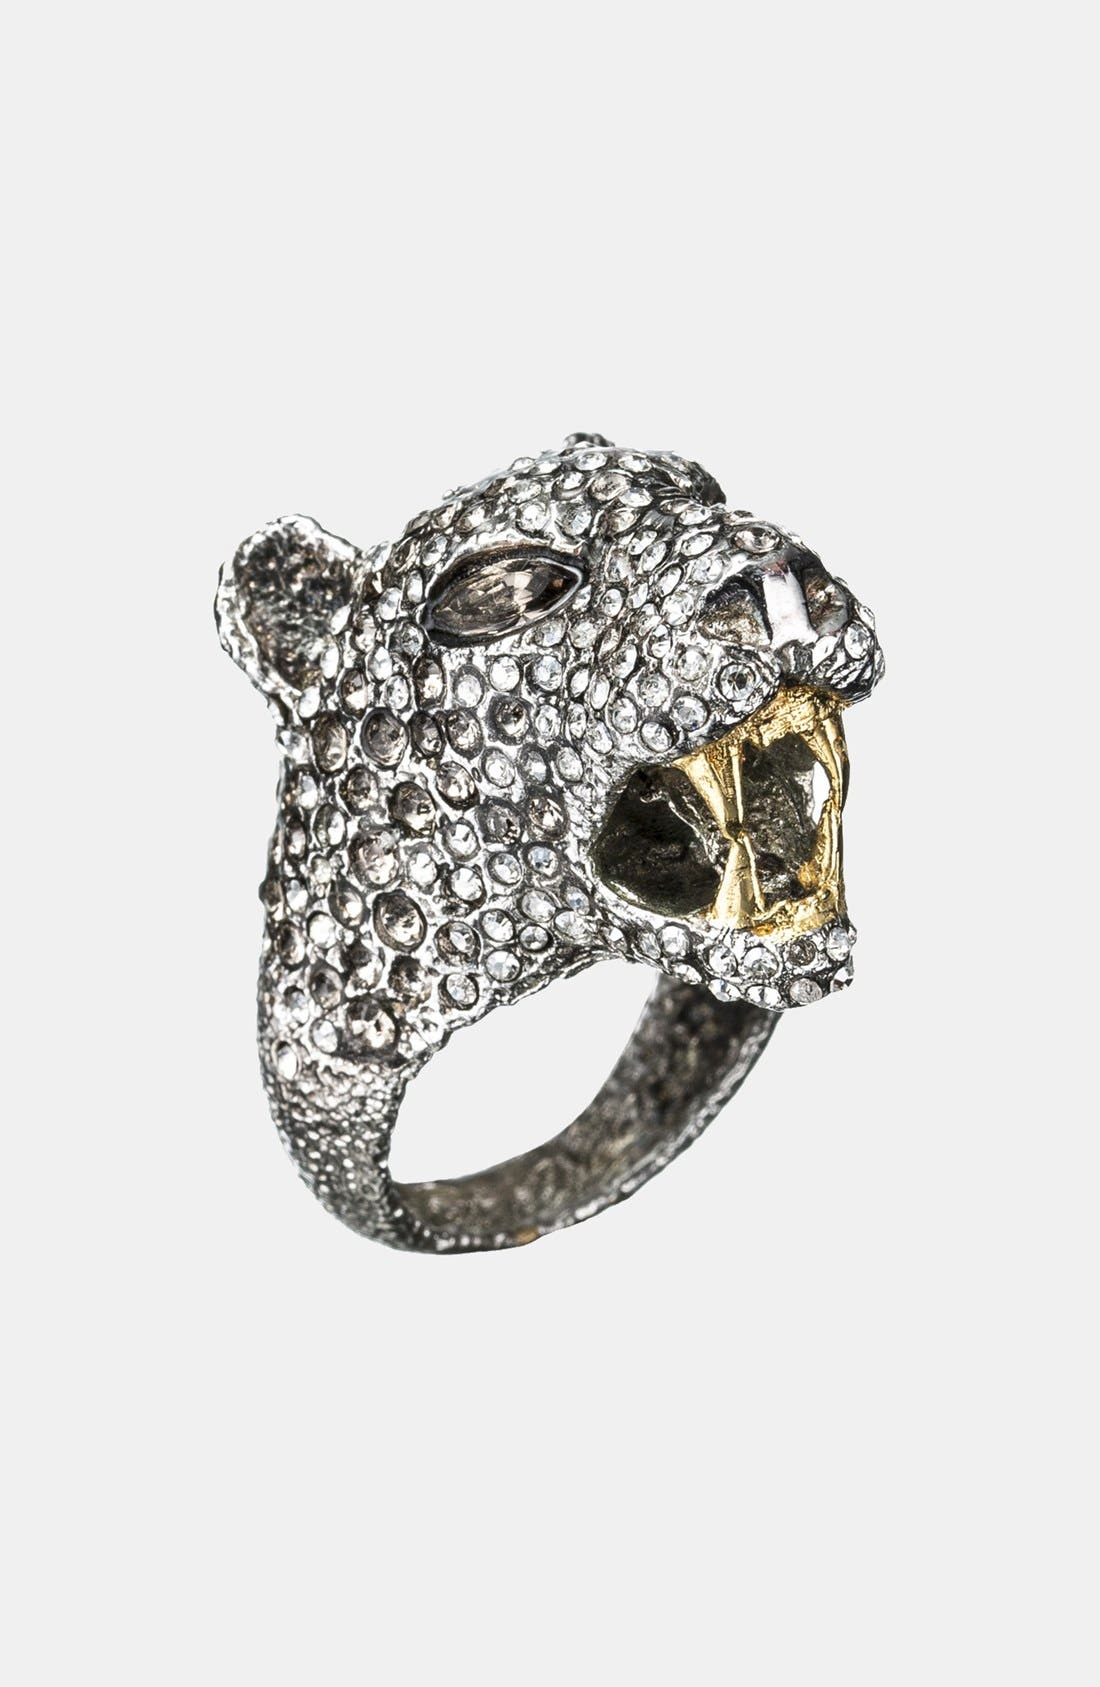 Alternate Image 1 Selected - Alexis Bittar 'Elements - Cordova' Jaguar Cocktail Ring